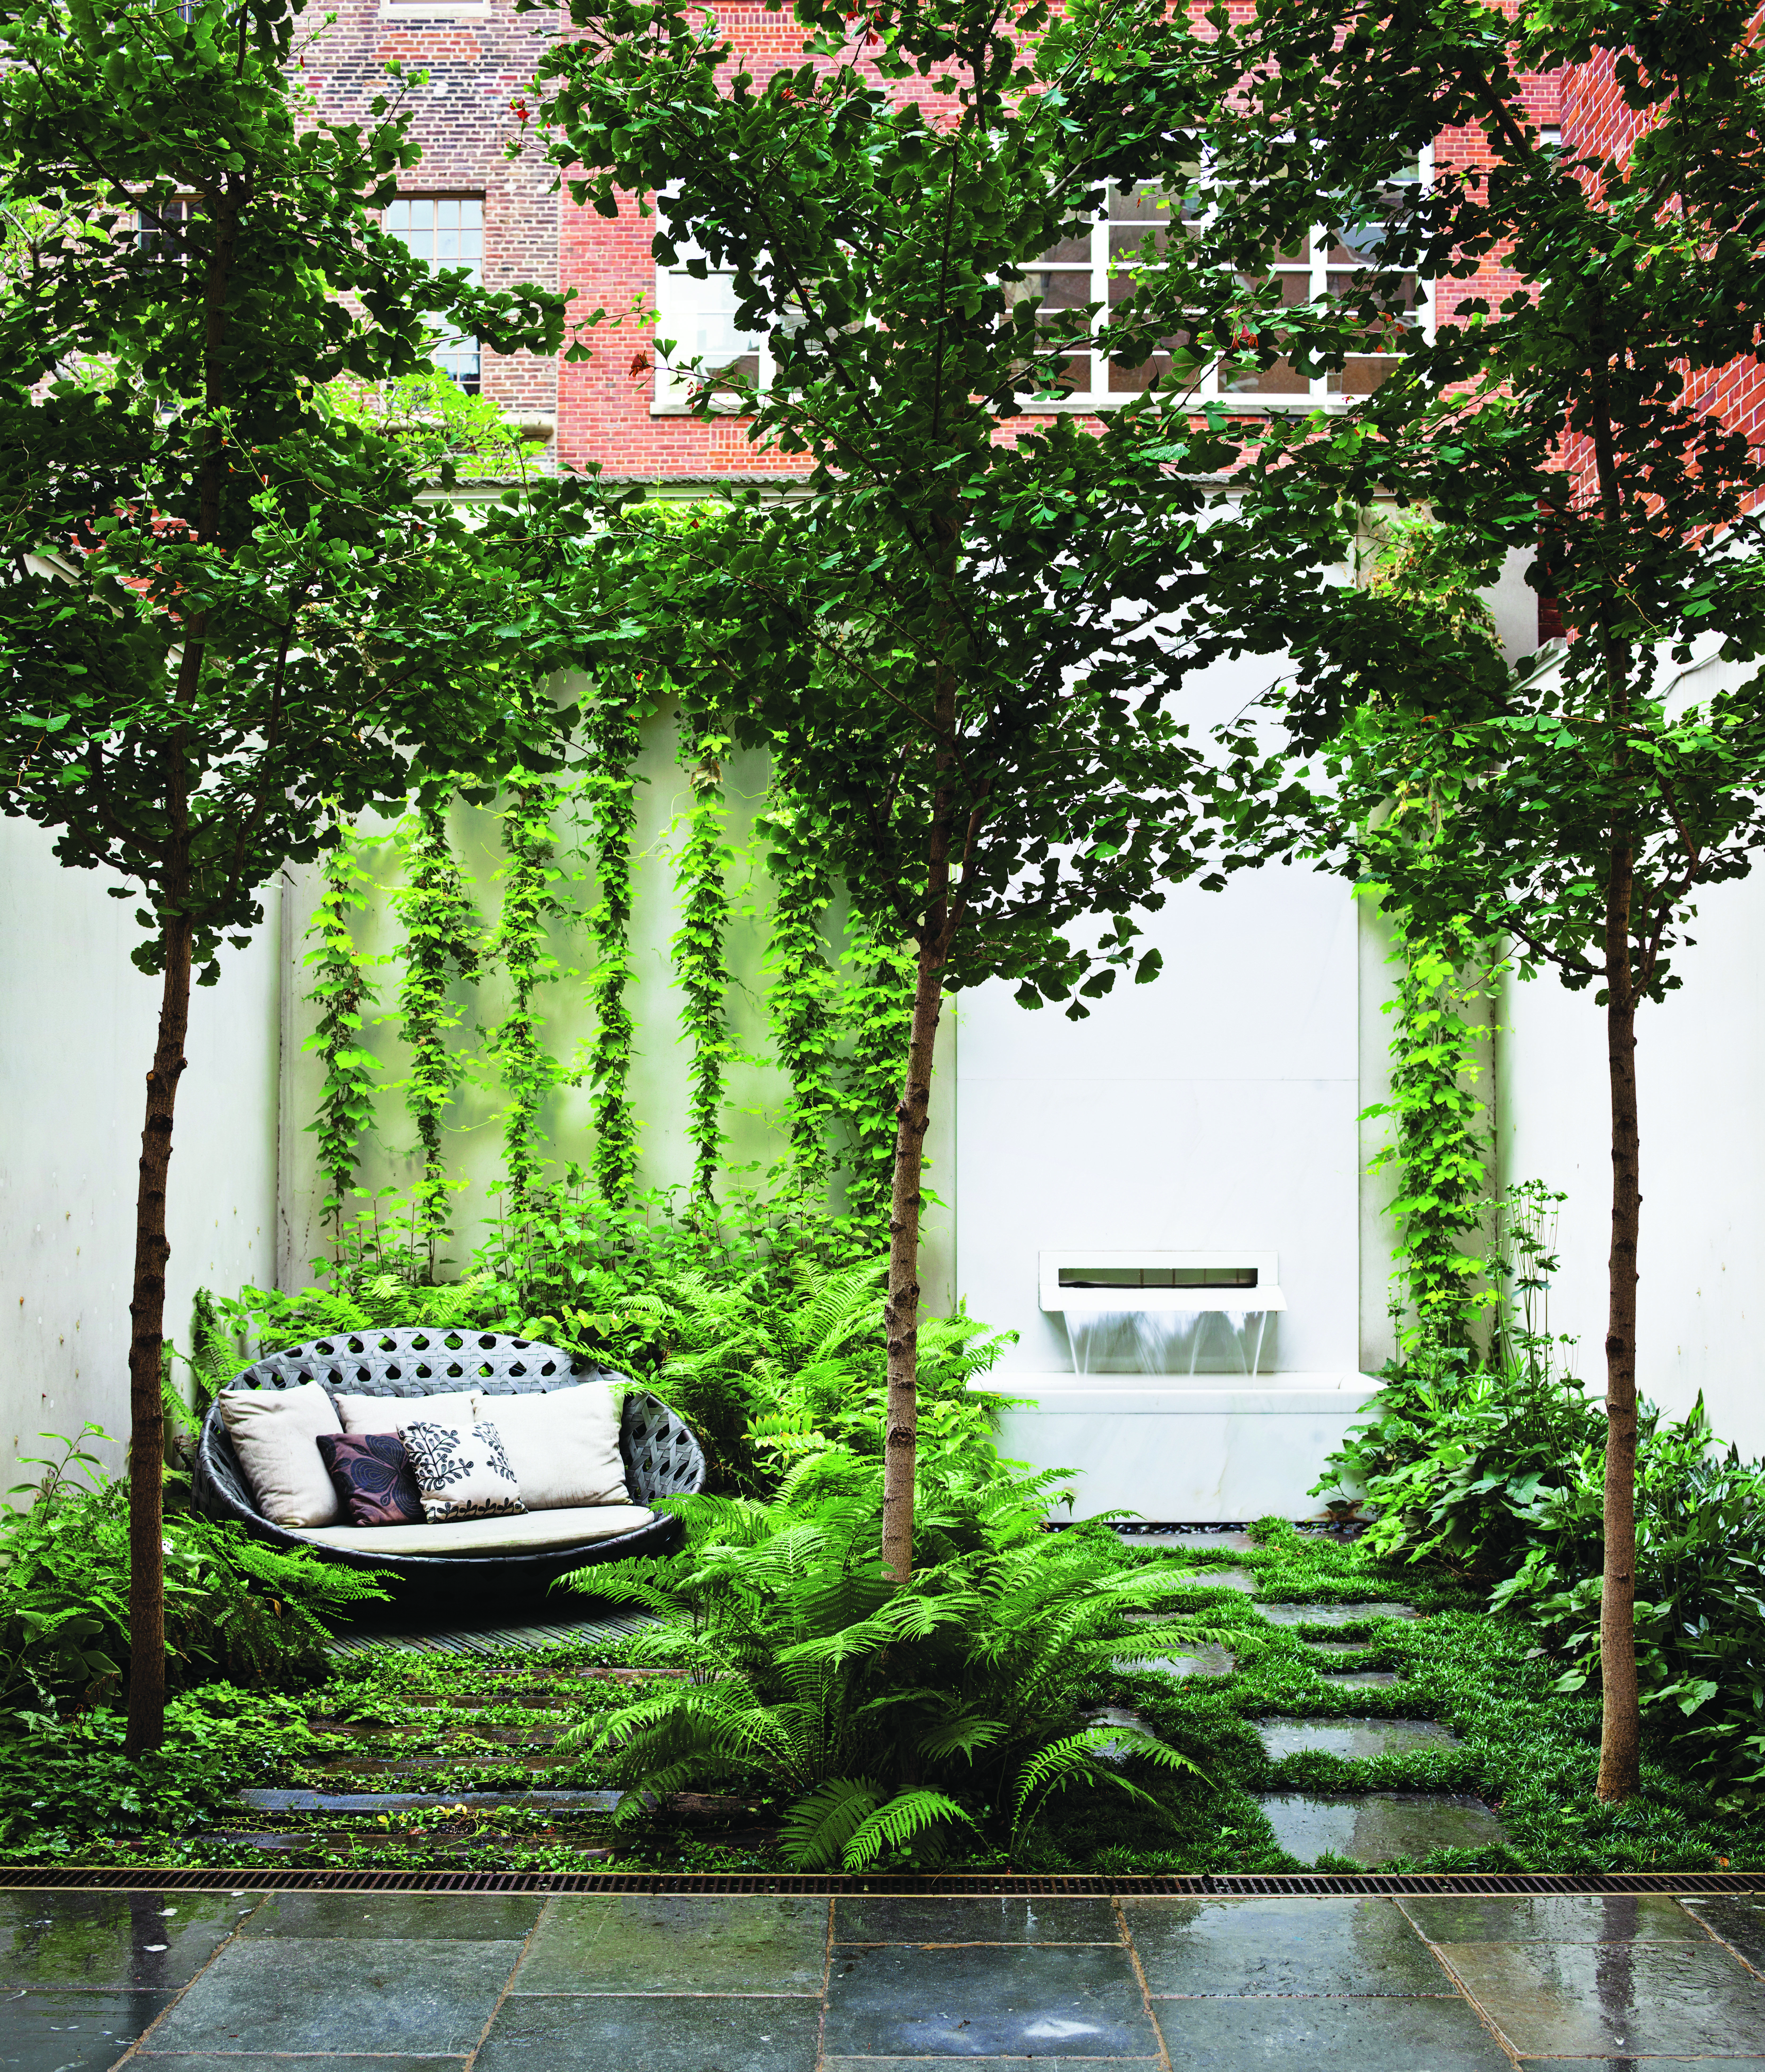 B&B Italia Outdoor s Canasta sofa by Patricia Urquiola shares a shady patch in the